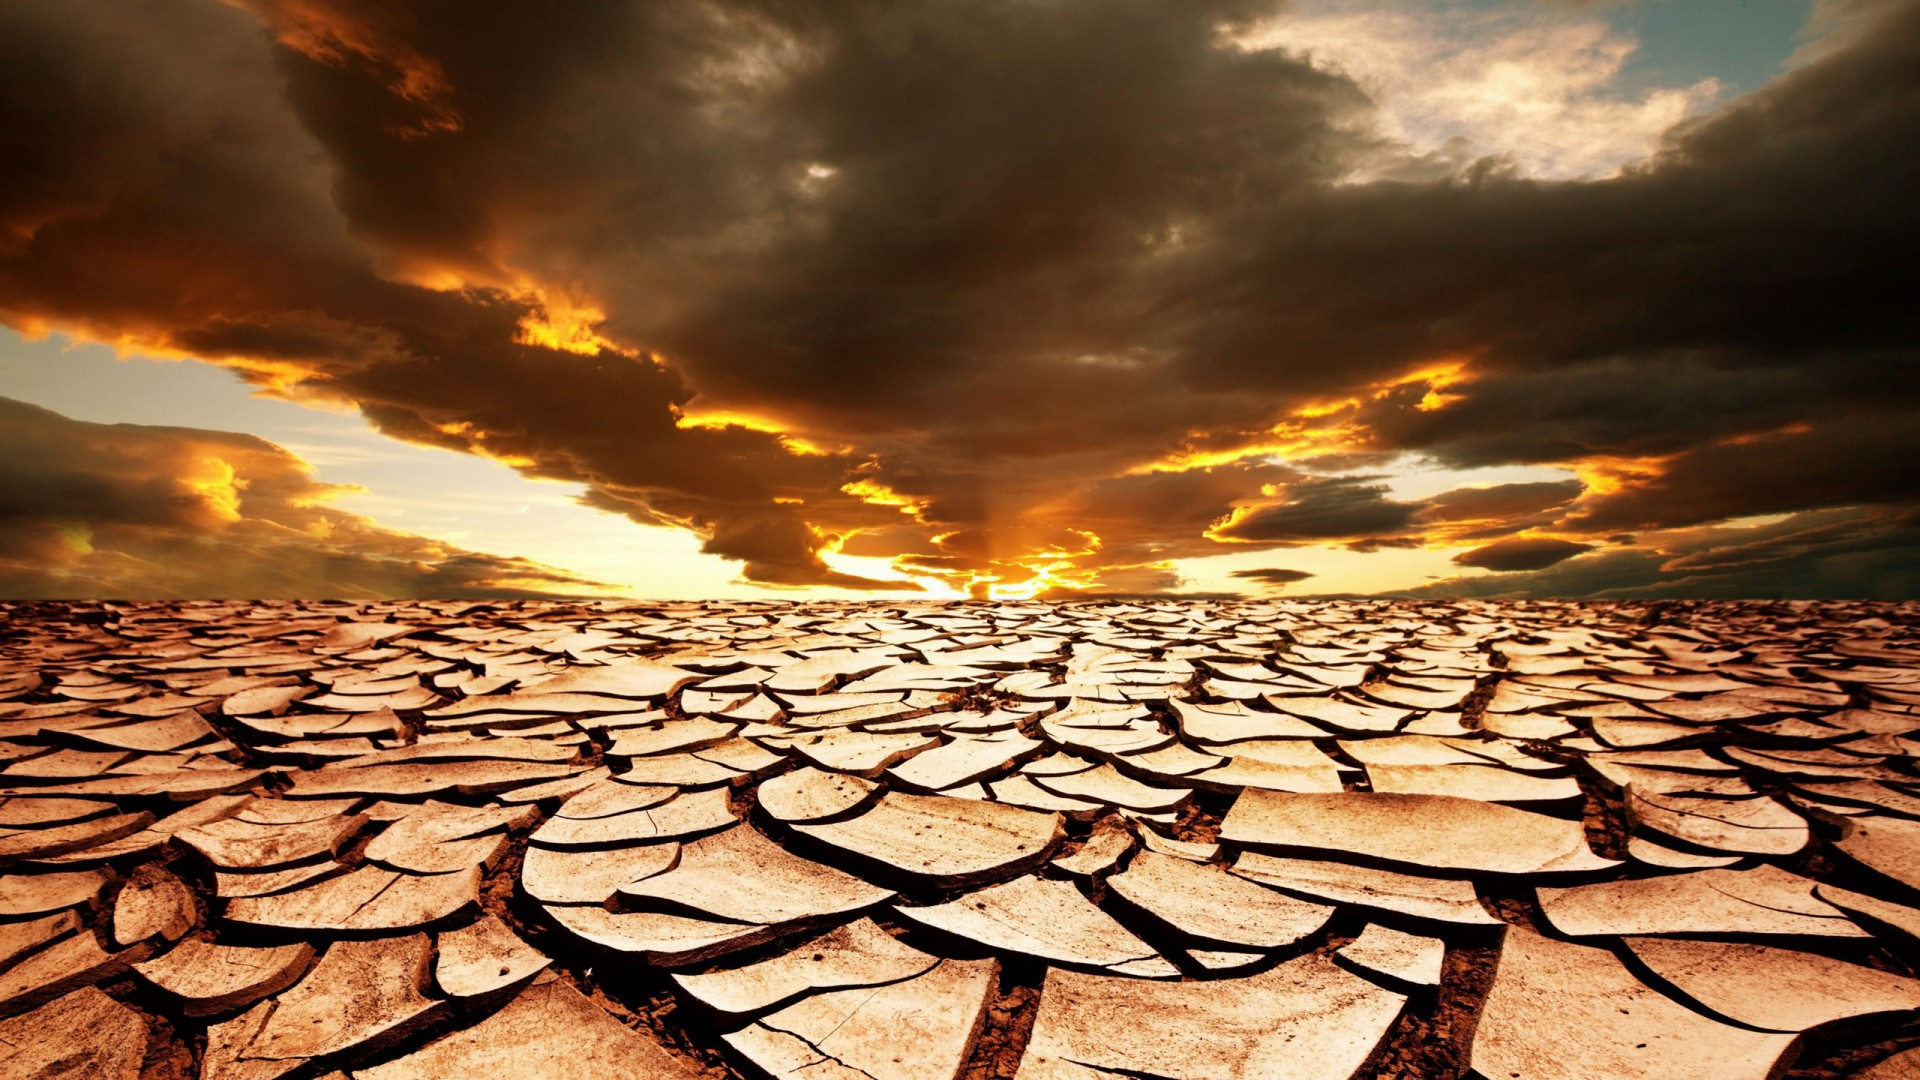 essay on desertifaction Essays, term papers, book reports, research papers on environment free papers and essays on desertification in ghana  we provide free model essays on environment, desertification in ghana reports, and term paper samples related to desertification in ghana .